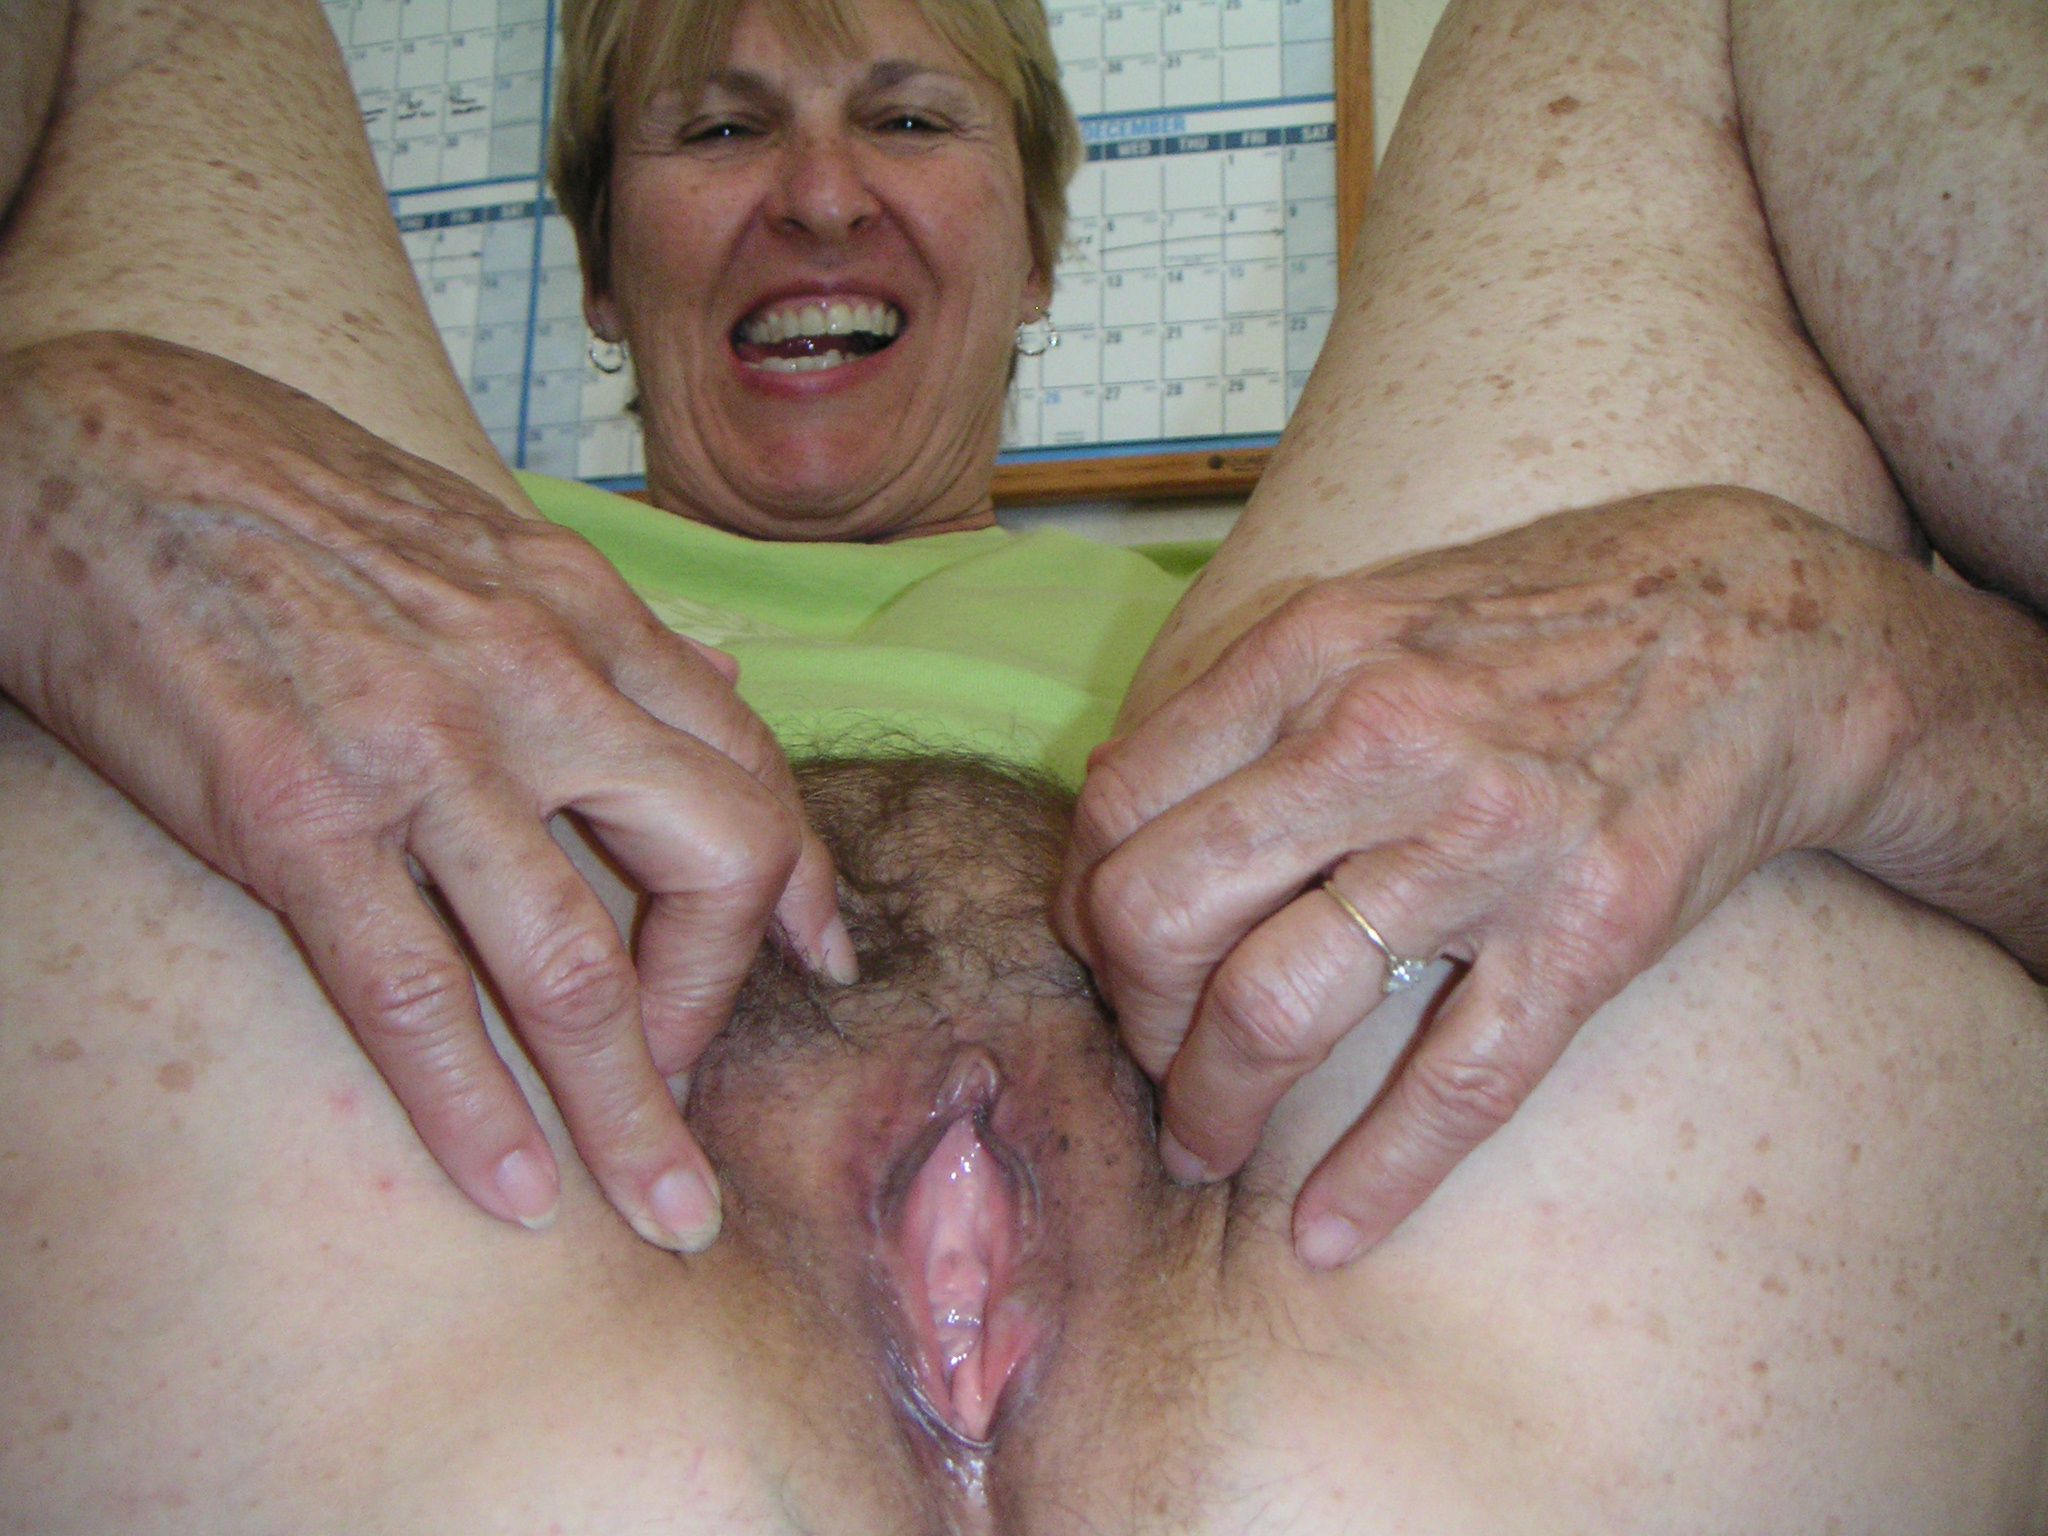 granny pussy porn pictures free amazing porn videos